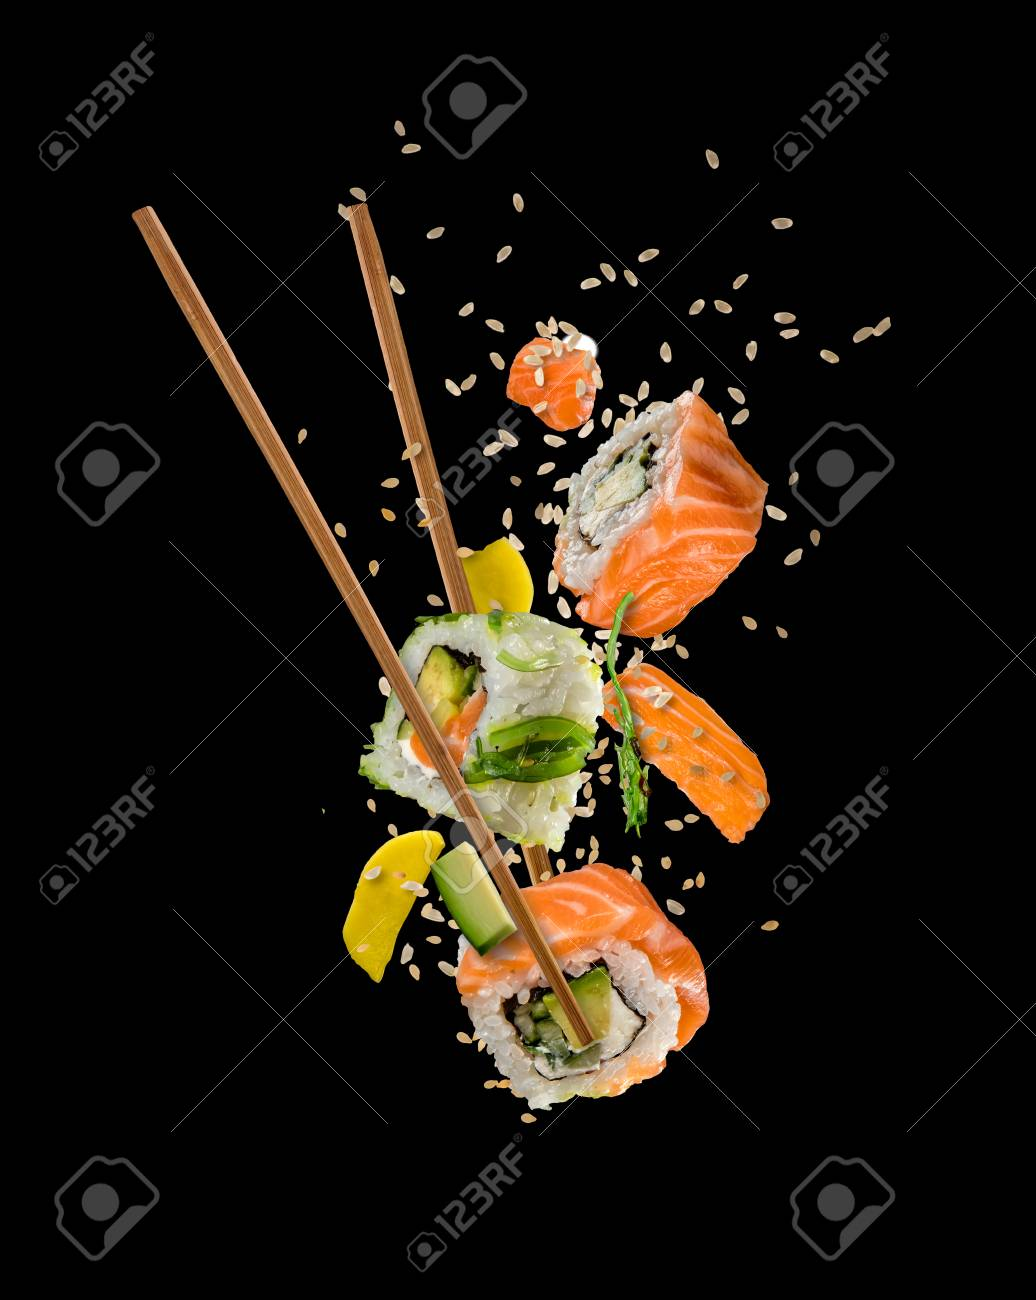 Sushi pieces placed between chopsticks, separated on black background. Popular sushi food. - 80901332